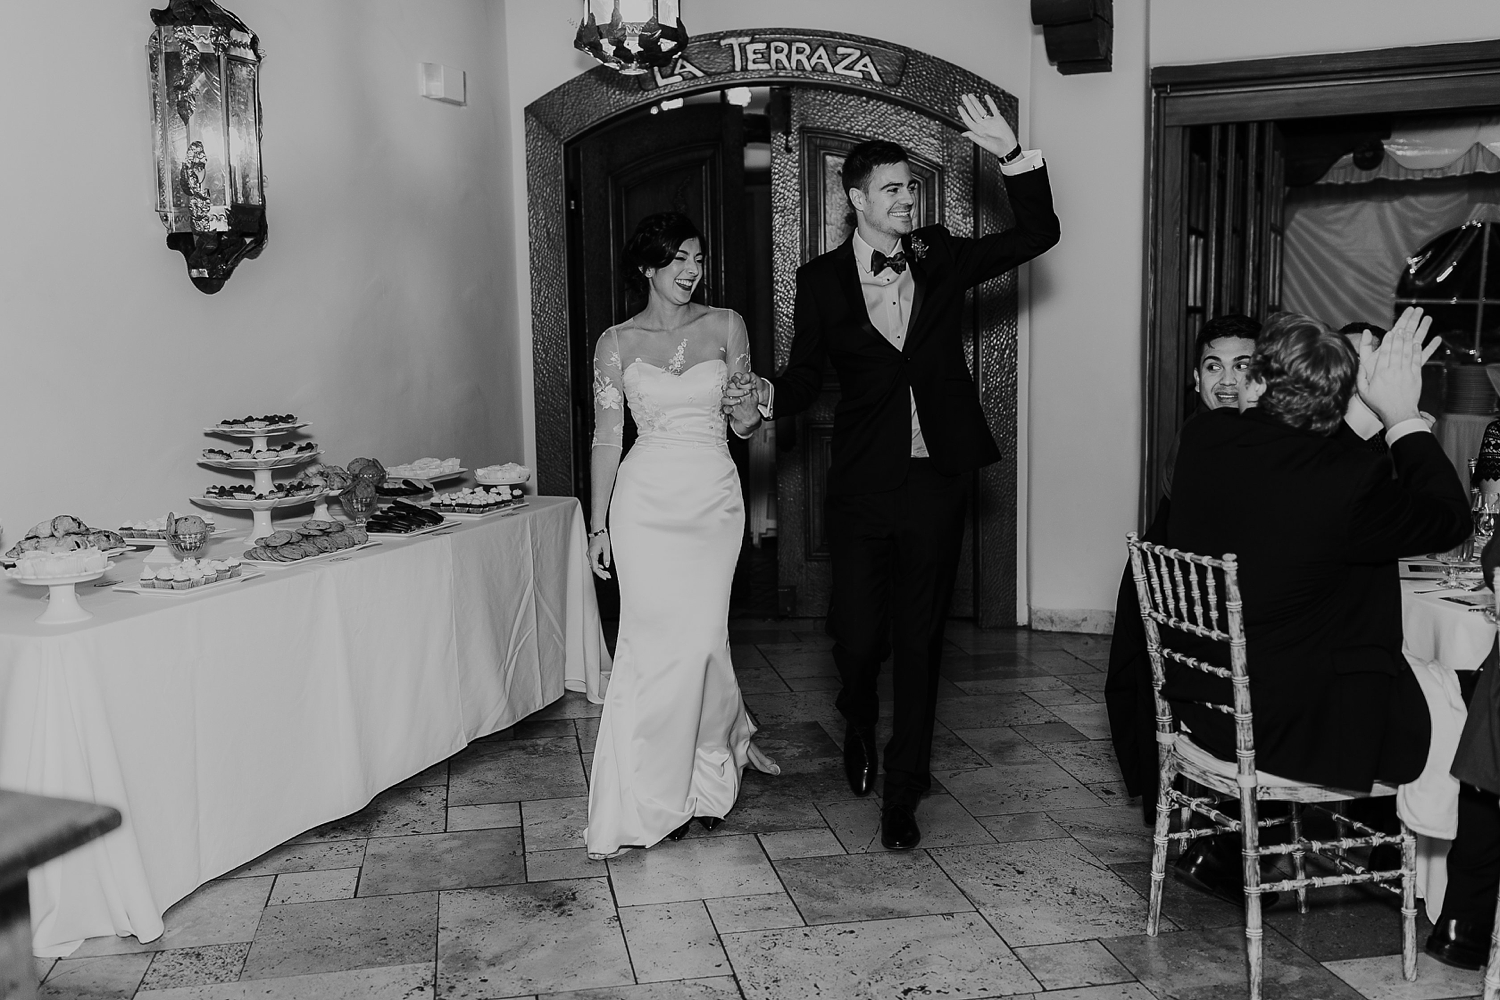 Alicia+lucia+photography+-+albuquerque+wedding+photographer+-+santa+fe+wedding+photography+-+new+mexico+wedding+photographer+-+la+fonda+santa+fe+wedding+-+santa+fe+fall+wedding+-+la+fonda+fall+wedding_0093.jpg